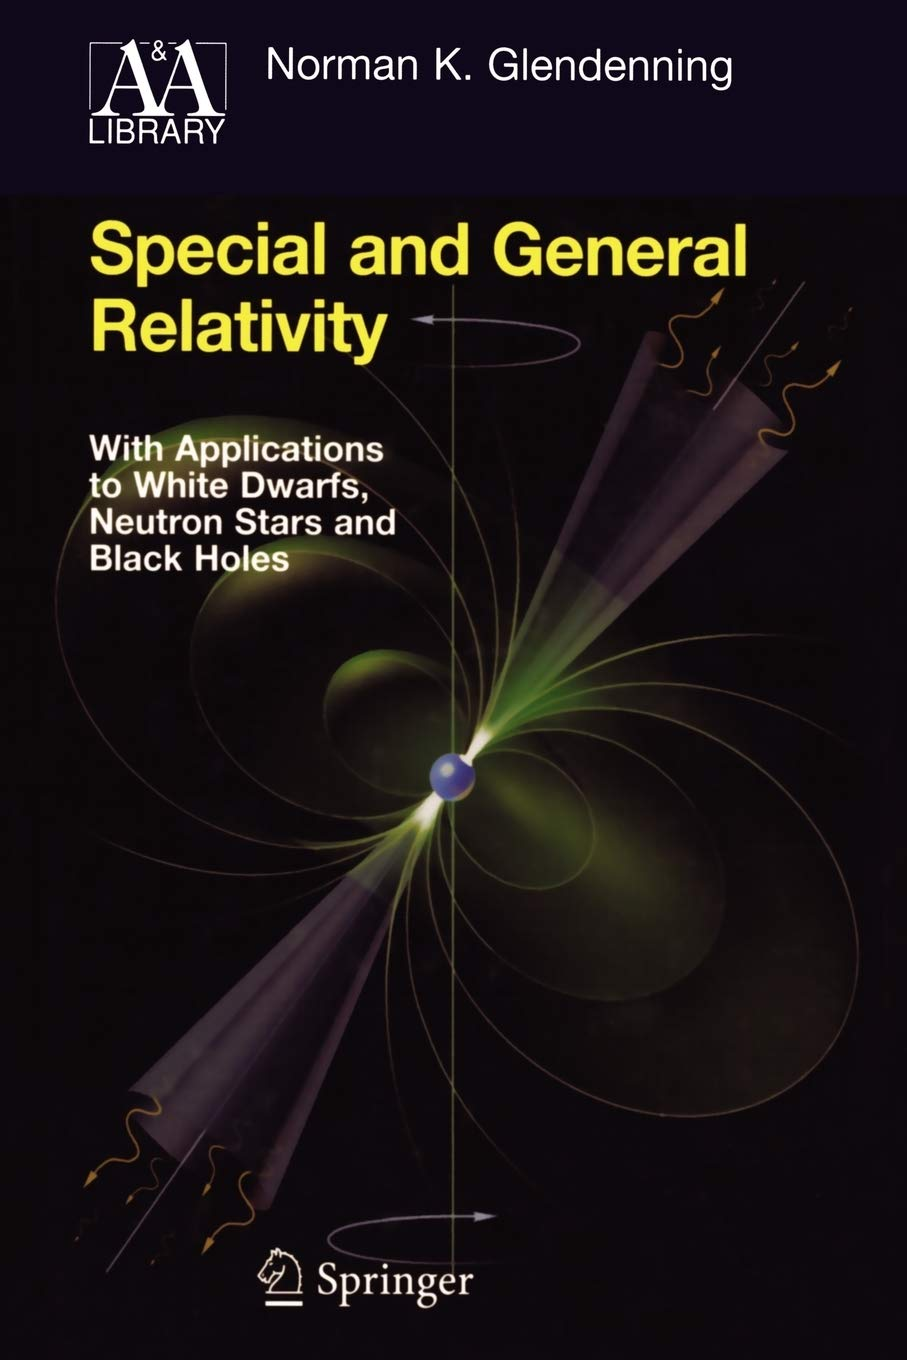 Download Special And General Relativity: With Applications To White Dwarfs, Neutron Stars And Black Holes 